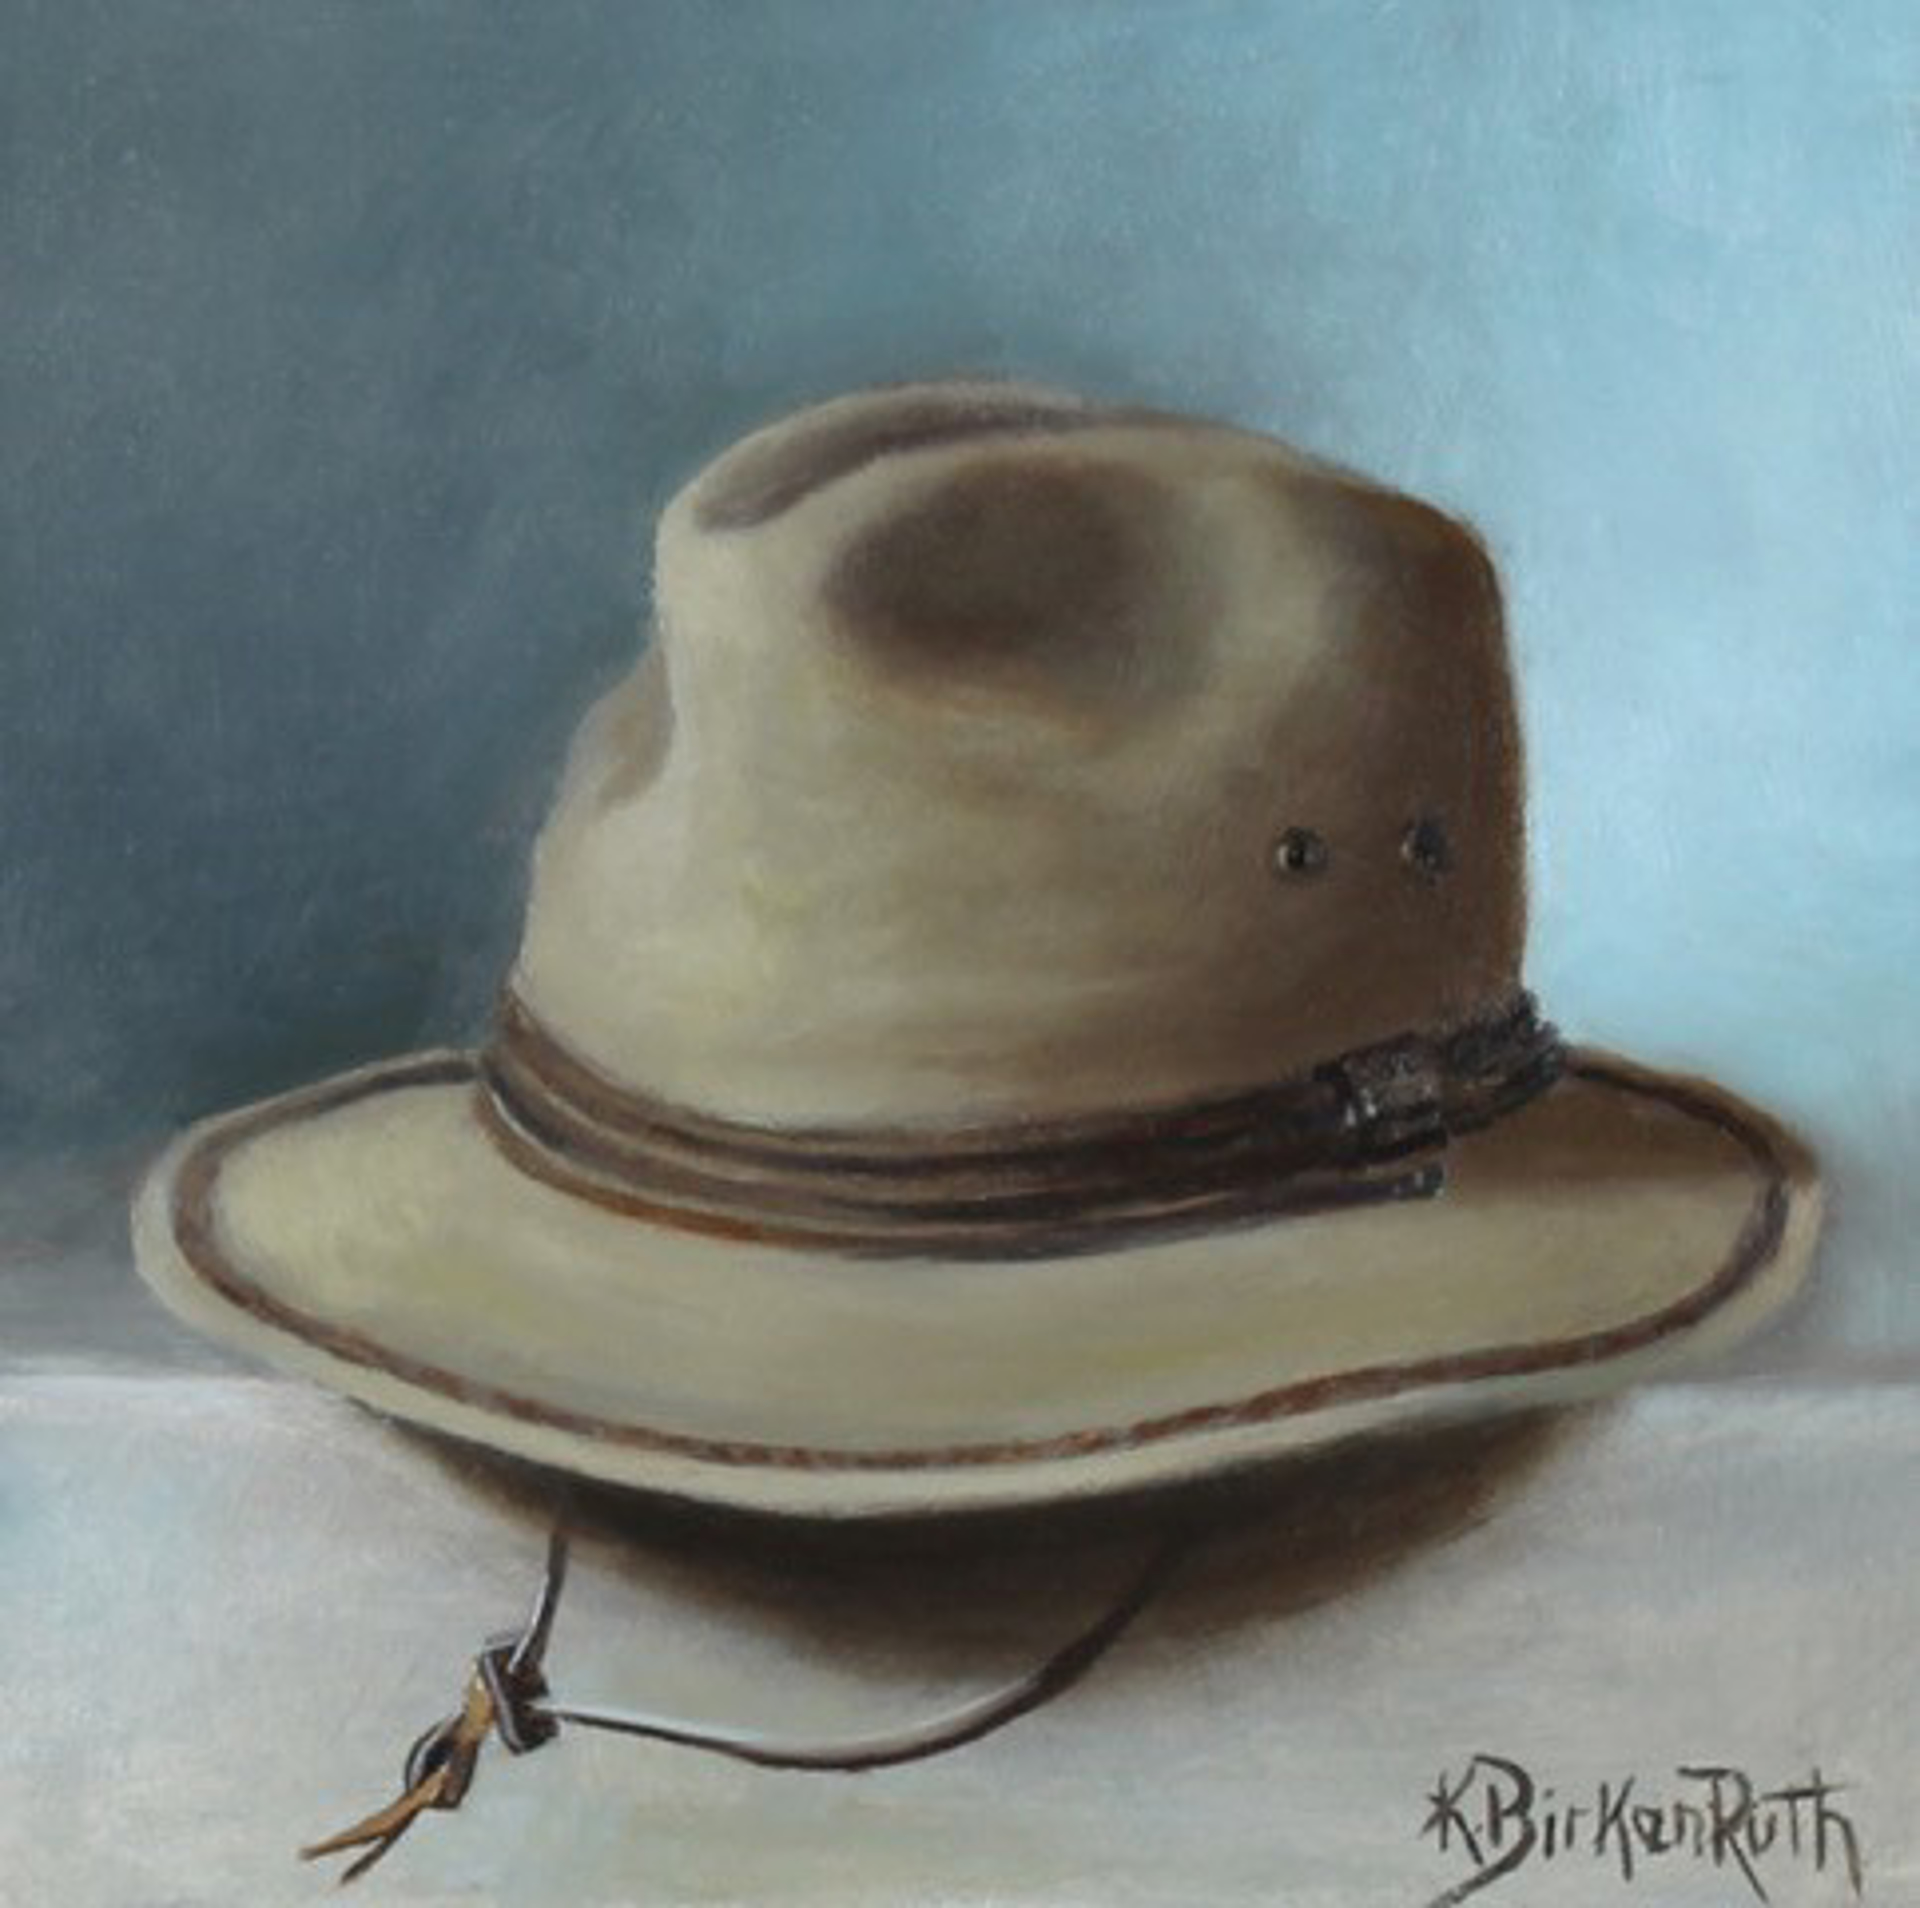 Stetson by Kelly Birkenruth